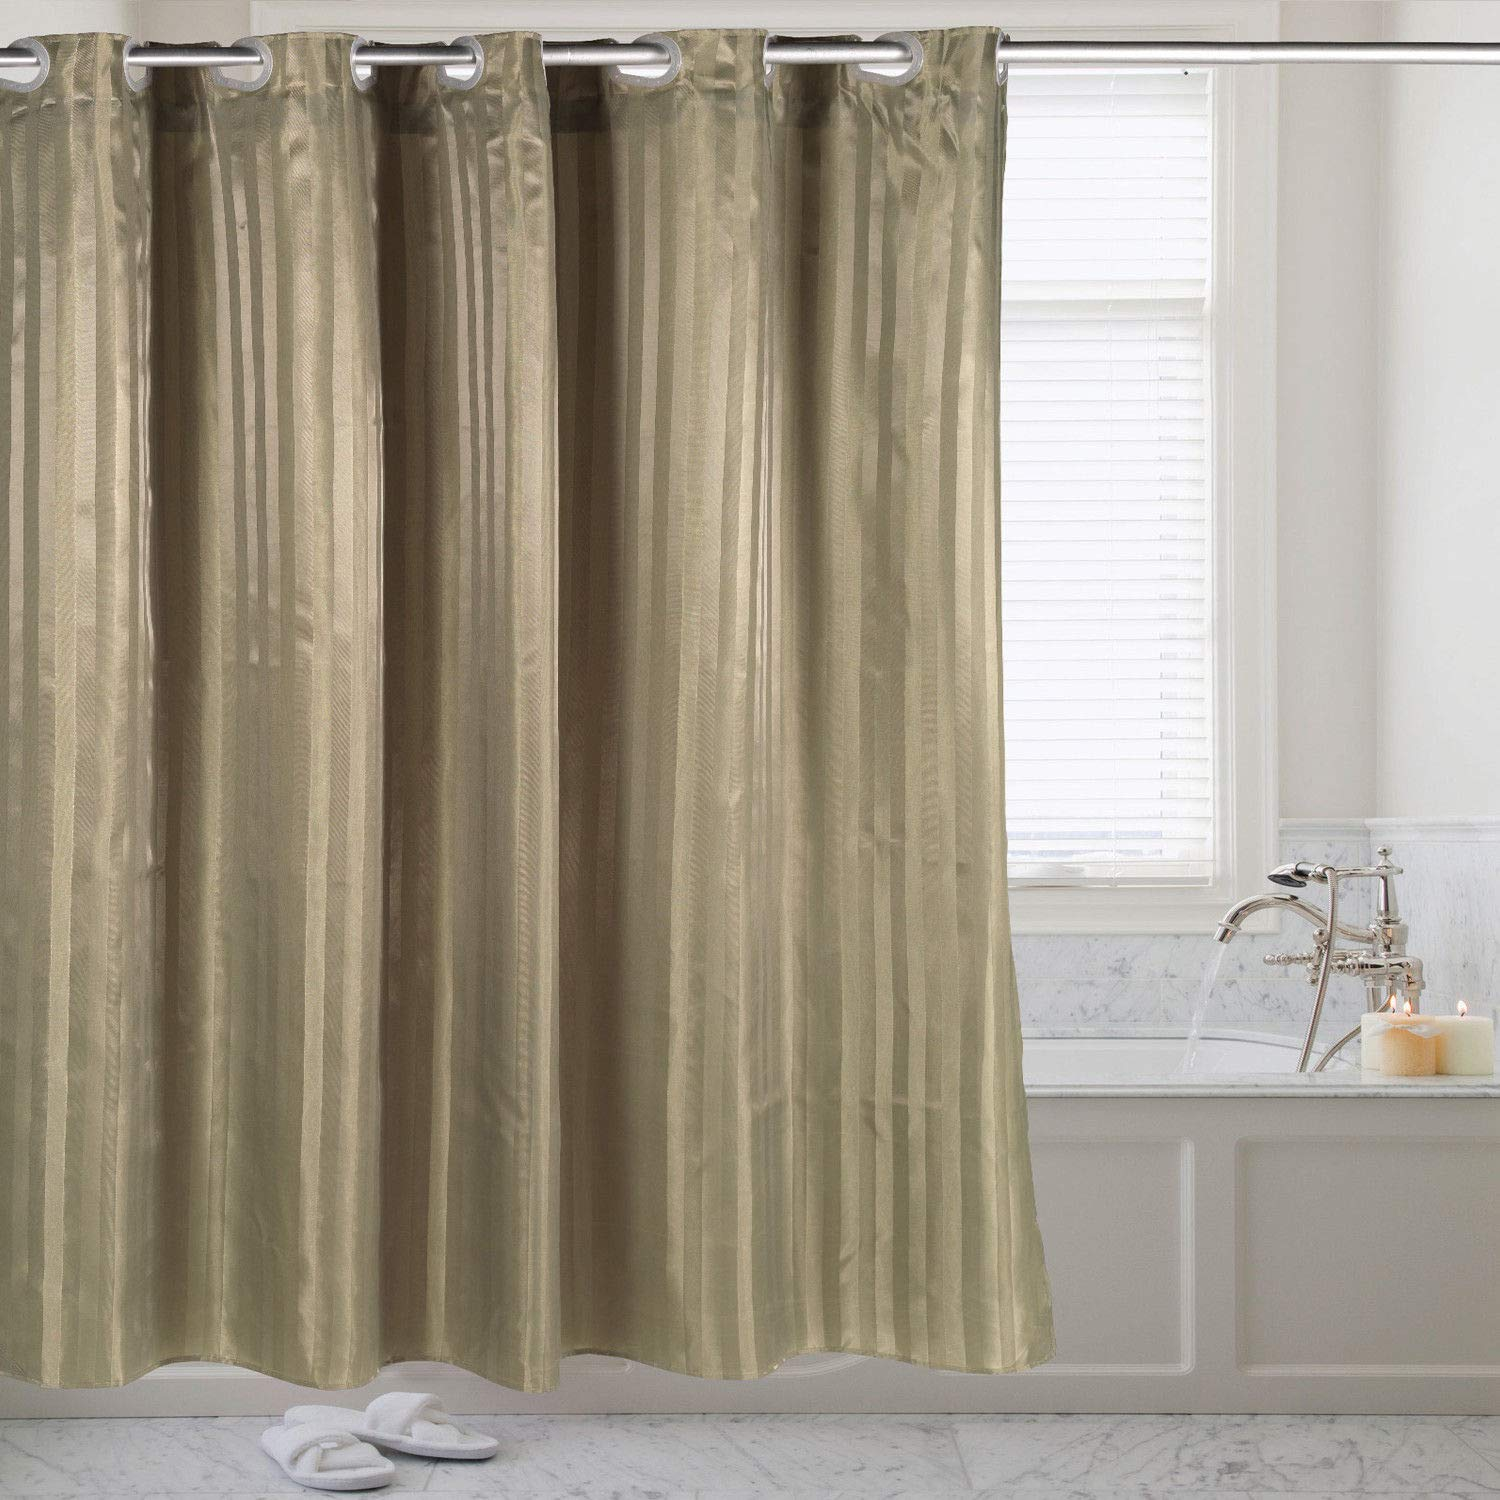 DN_LIN New Hookless Fabric Dobby Stripe Shower Curtain with Snap Off Liner 70''x75'' - Sage.